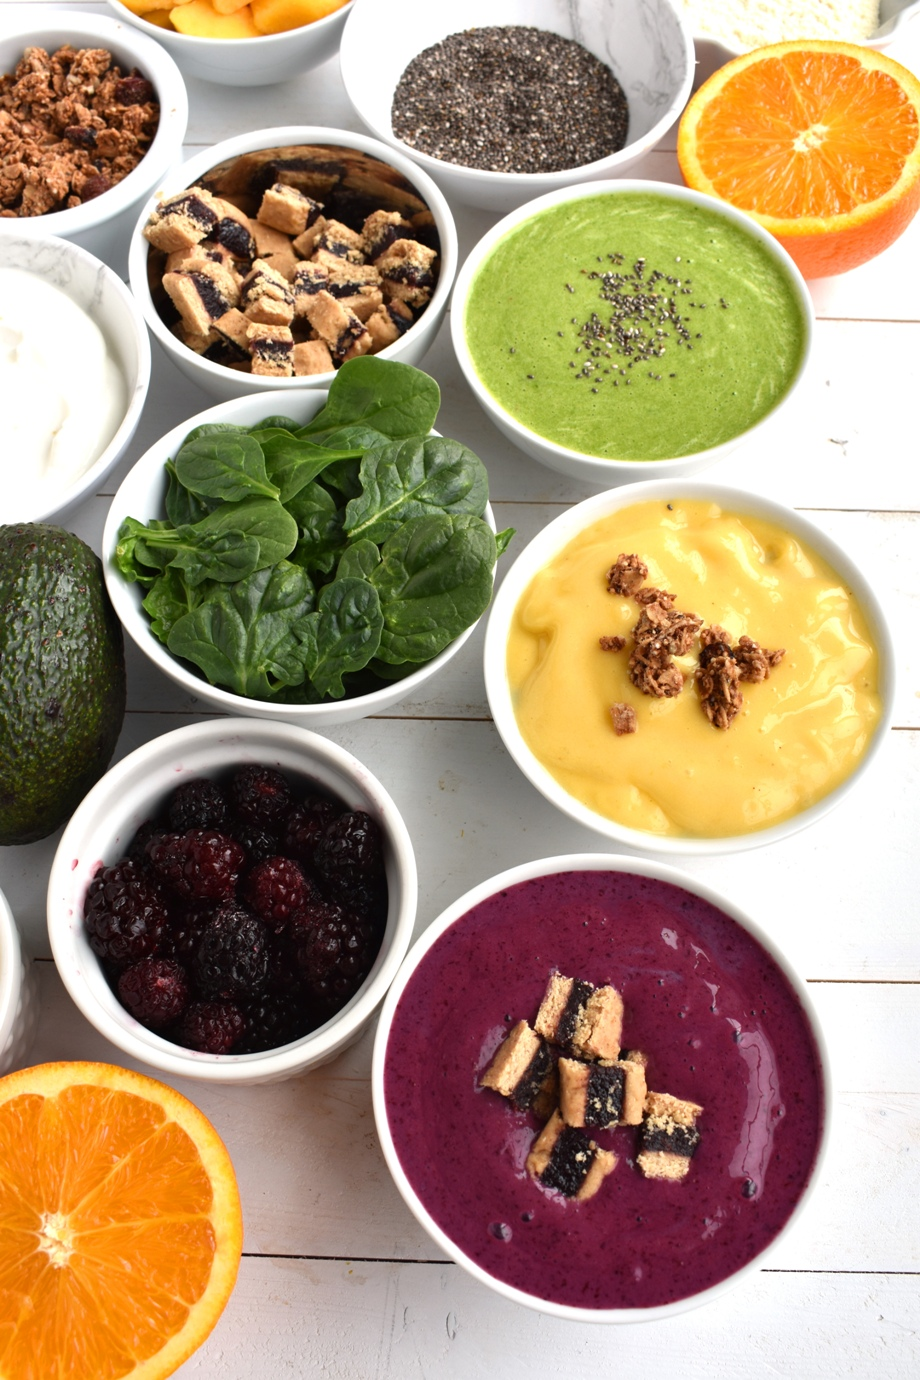 Build-Your Own Smoothie Bowl Bar has tons of smoothie ingredient options as well as fun toppings for the smoothie bowls! A fun party idea where everyone can customize their own smoothie bowl.